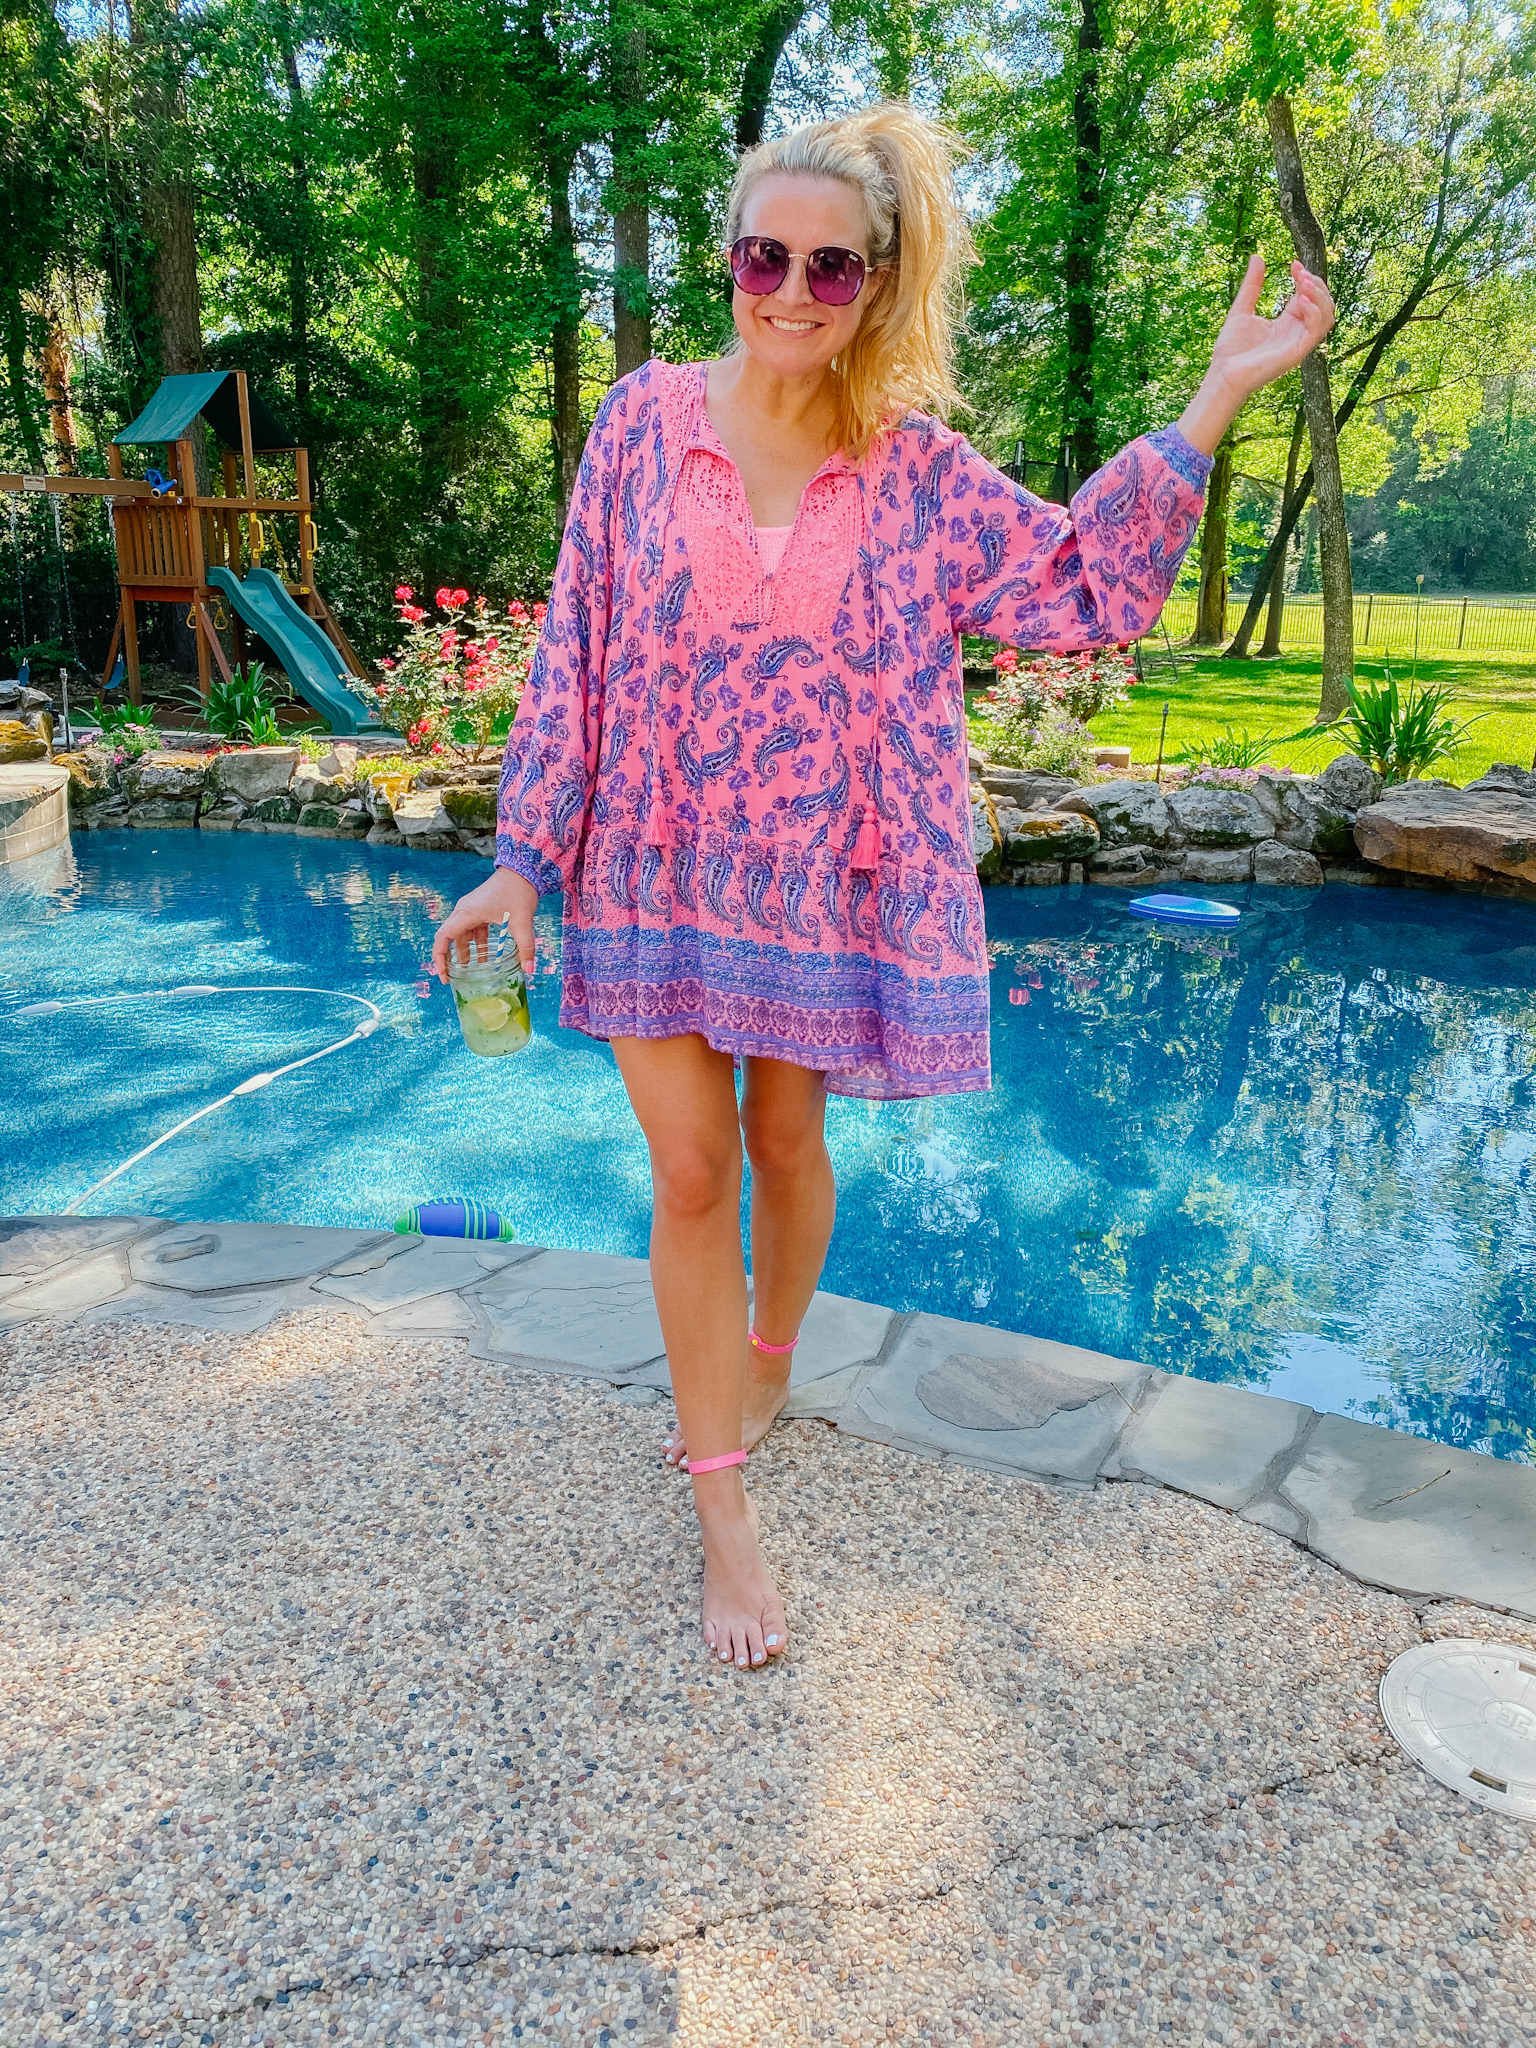 Best Sellers by popular Houston fashion blog, The House of Fancy: image of a woman standing next to a swimming pool and wearing a pink and blue paisley print dress with some oversized sunglasses.